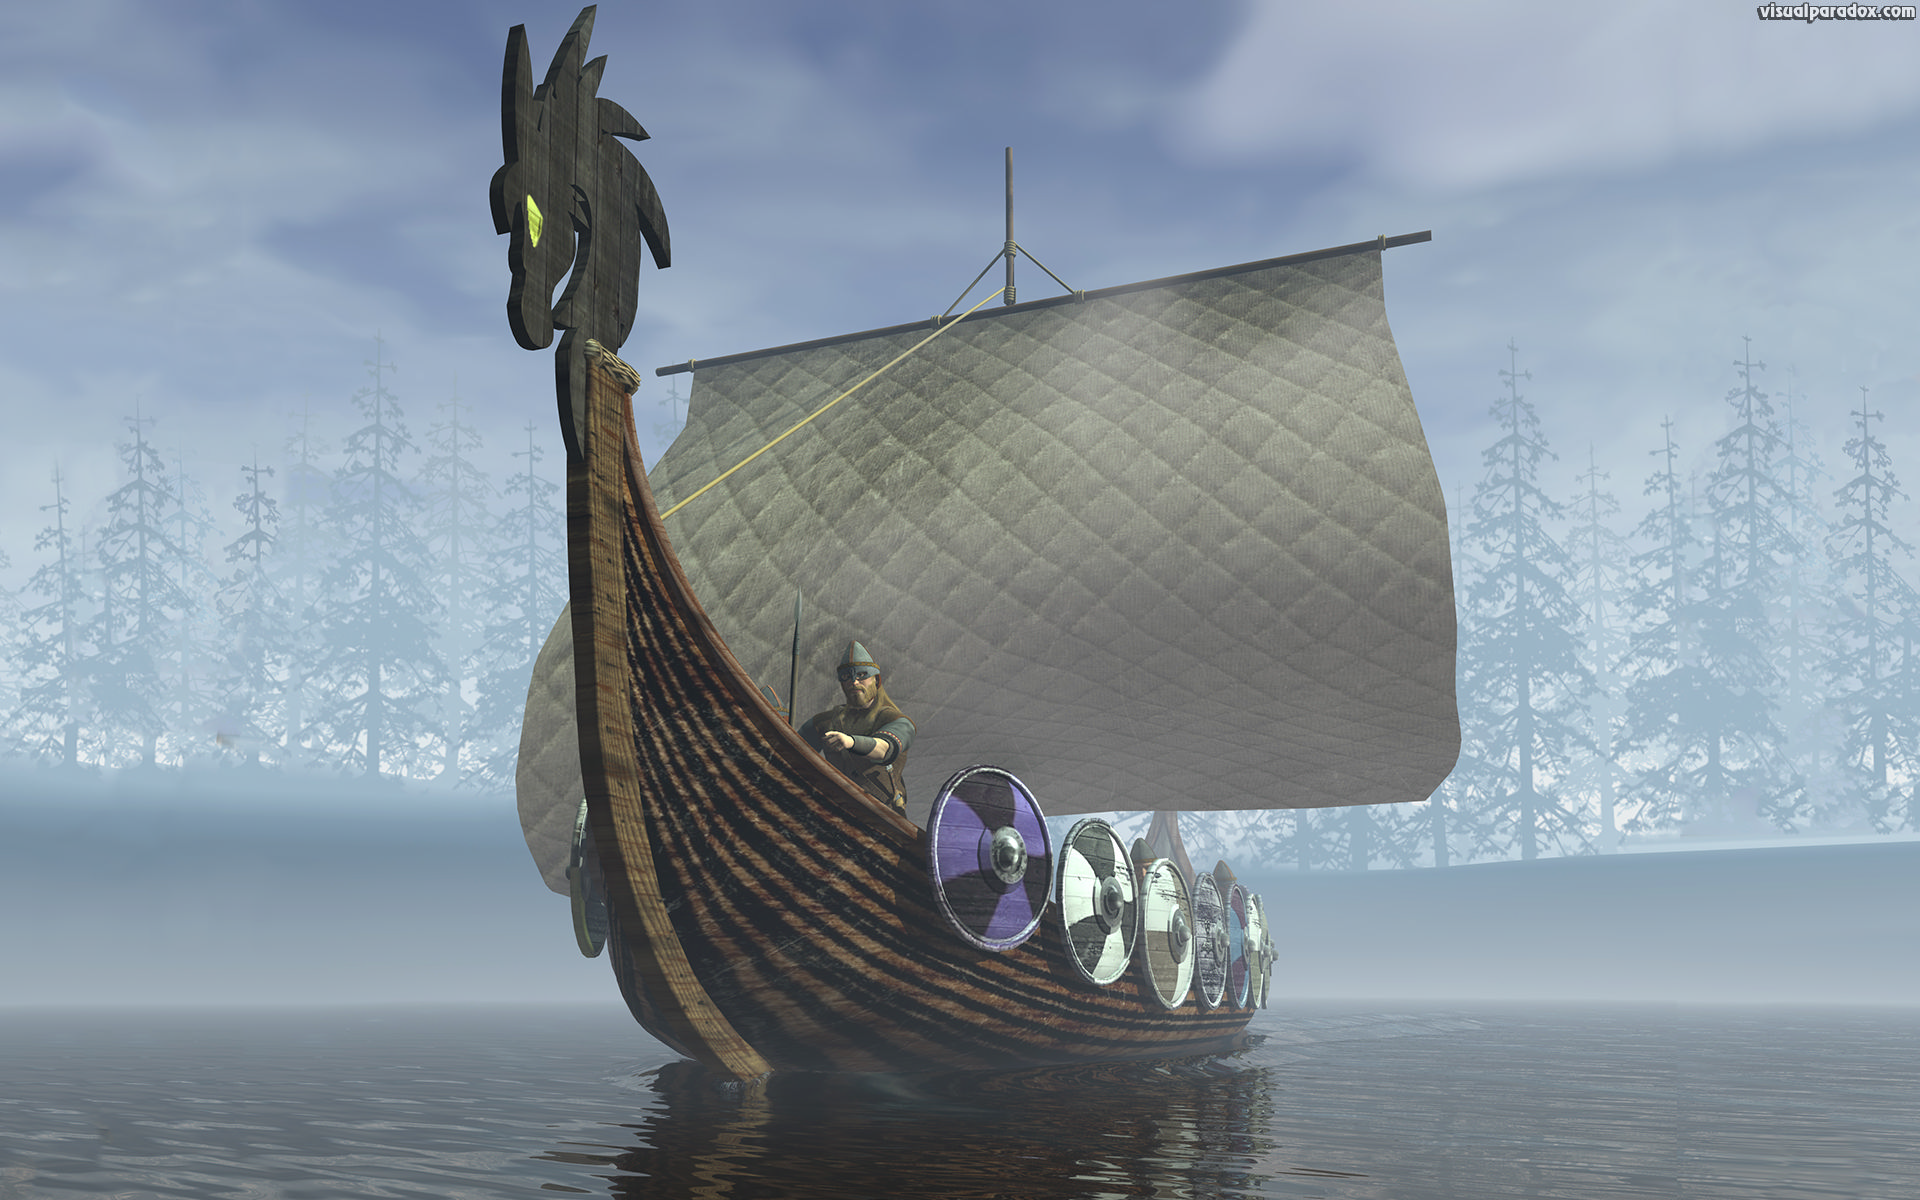 ancient, attack, bay, black, boat, brave, calm, coast, culture, dragon, drakkar, figurehead, fog, history, horde, human, landscape, male, medieval, men, natural, nature, north, ocean, old, ornate, outdoors, people, person, raider, sail, sailing, sea, seafaring, shield, ship, sky, strength, strong, traditional, transportation, travel, vessel, viking, vintage, voyage, war, warrior, warship, water, white, wood, 3d, wallpaper